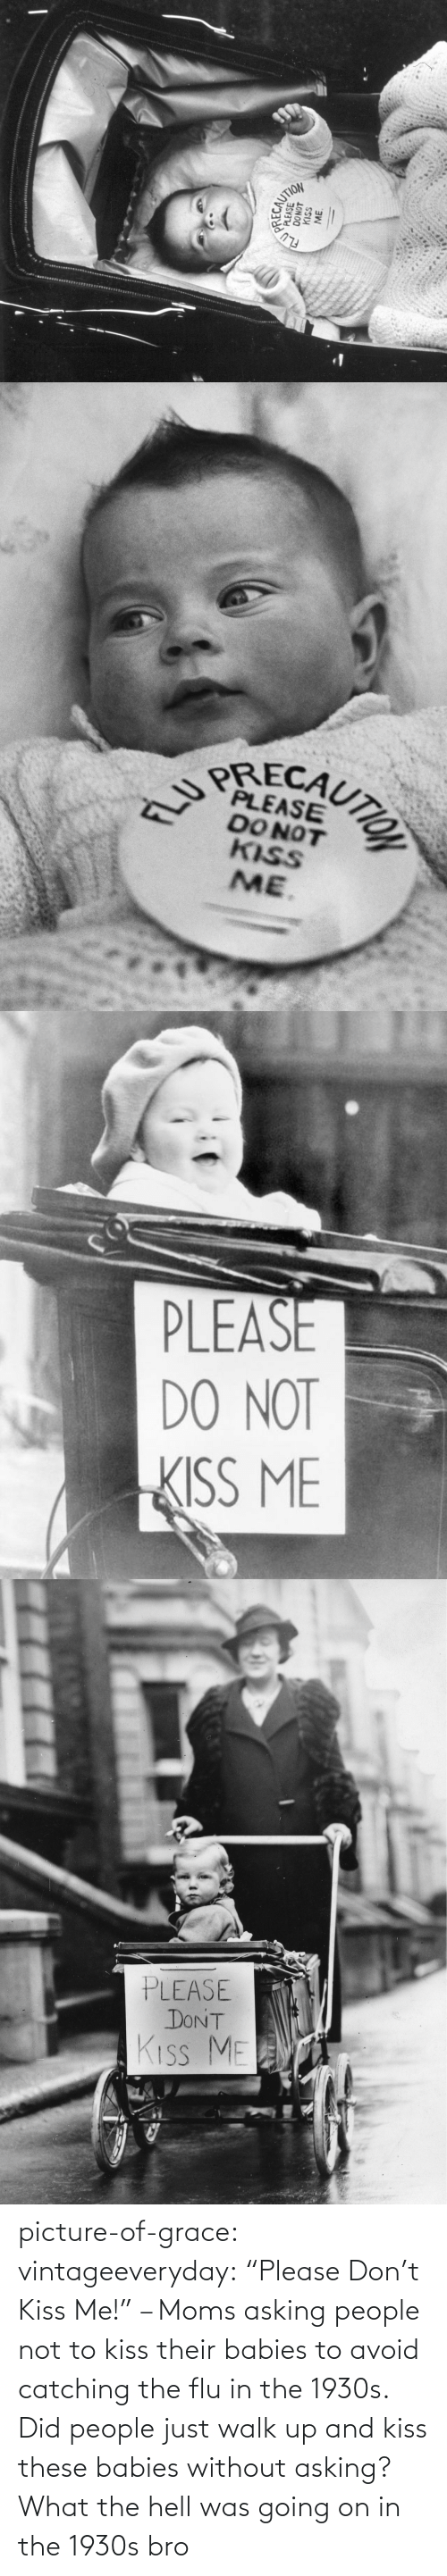 "walk: picture-of-grace:  vintageeveryday: ""Please Don't Kiss Me!"" – Moms asking people not to kiss their babies to avoid catching the flu in the 1930s.   Did people just walk up and kiss these babies without asking? What the hell was going on in the 1930s bro"